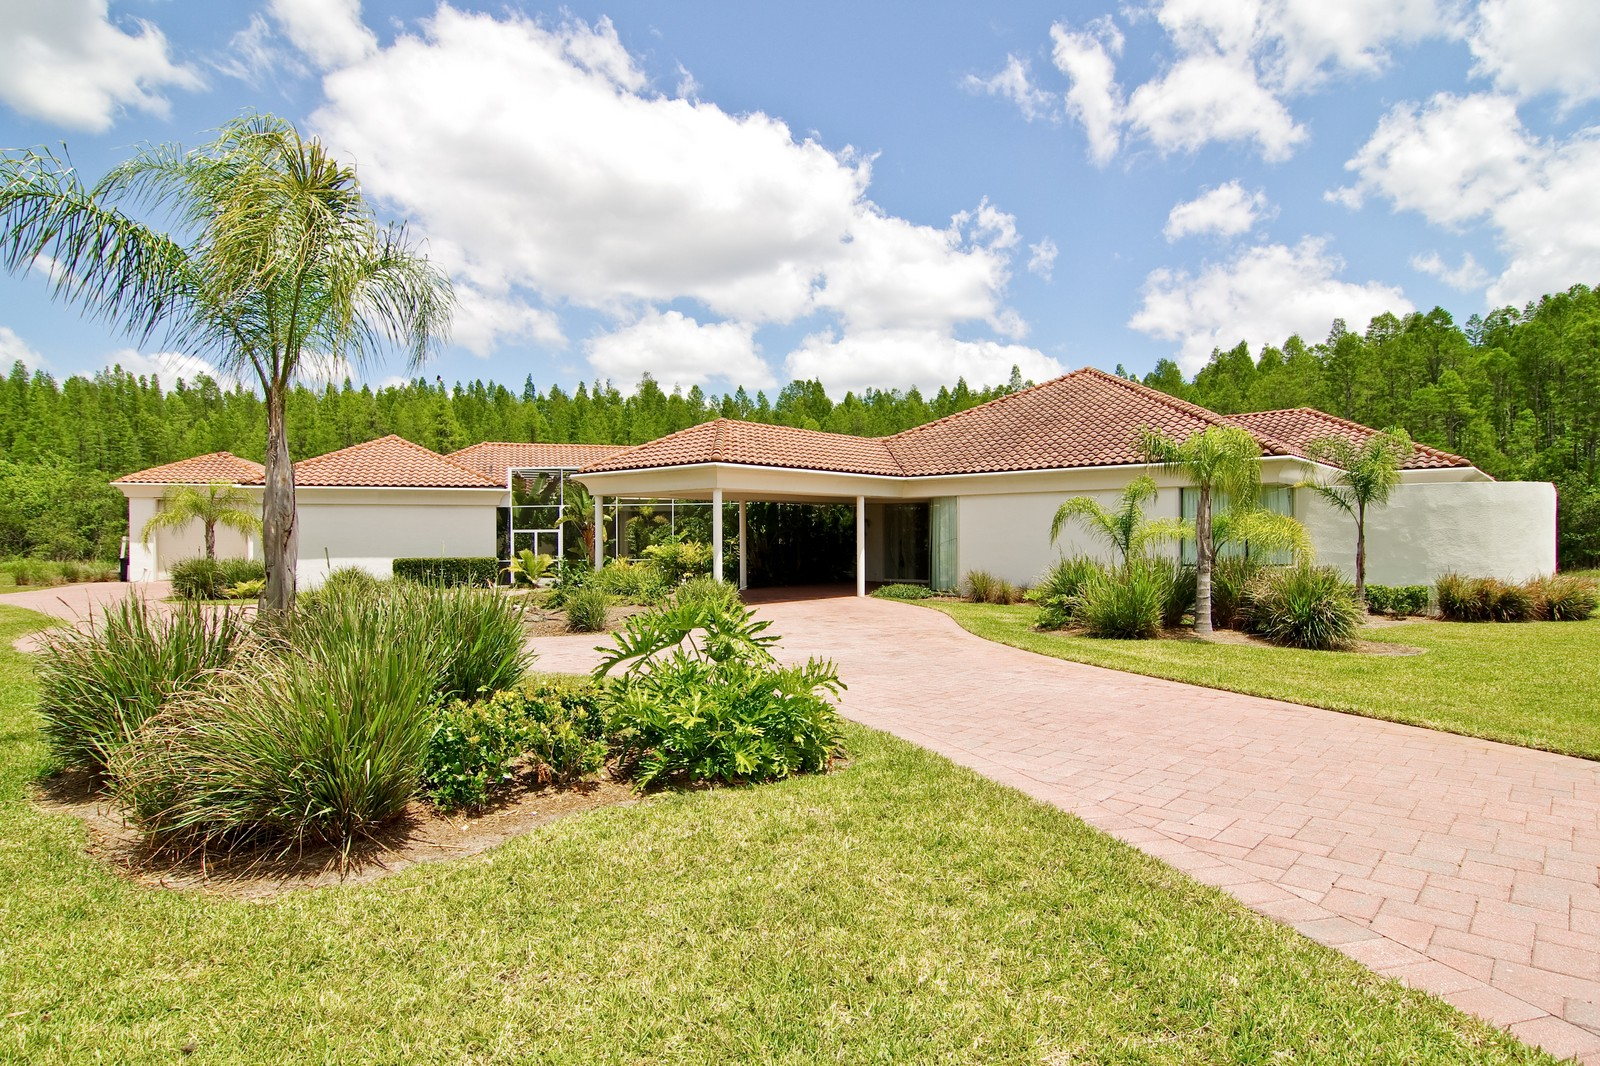 Real Estate Photography - 5601 TPC Blvd, Lutz, FL, 33558 - Front View